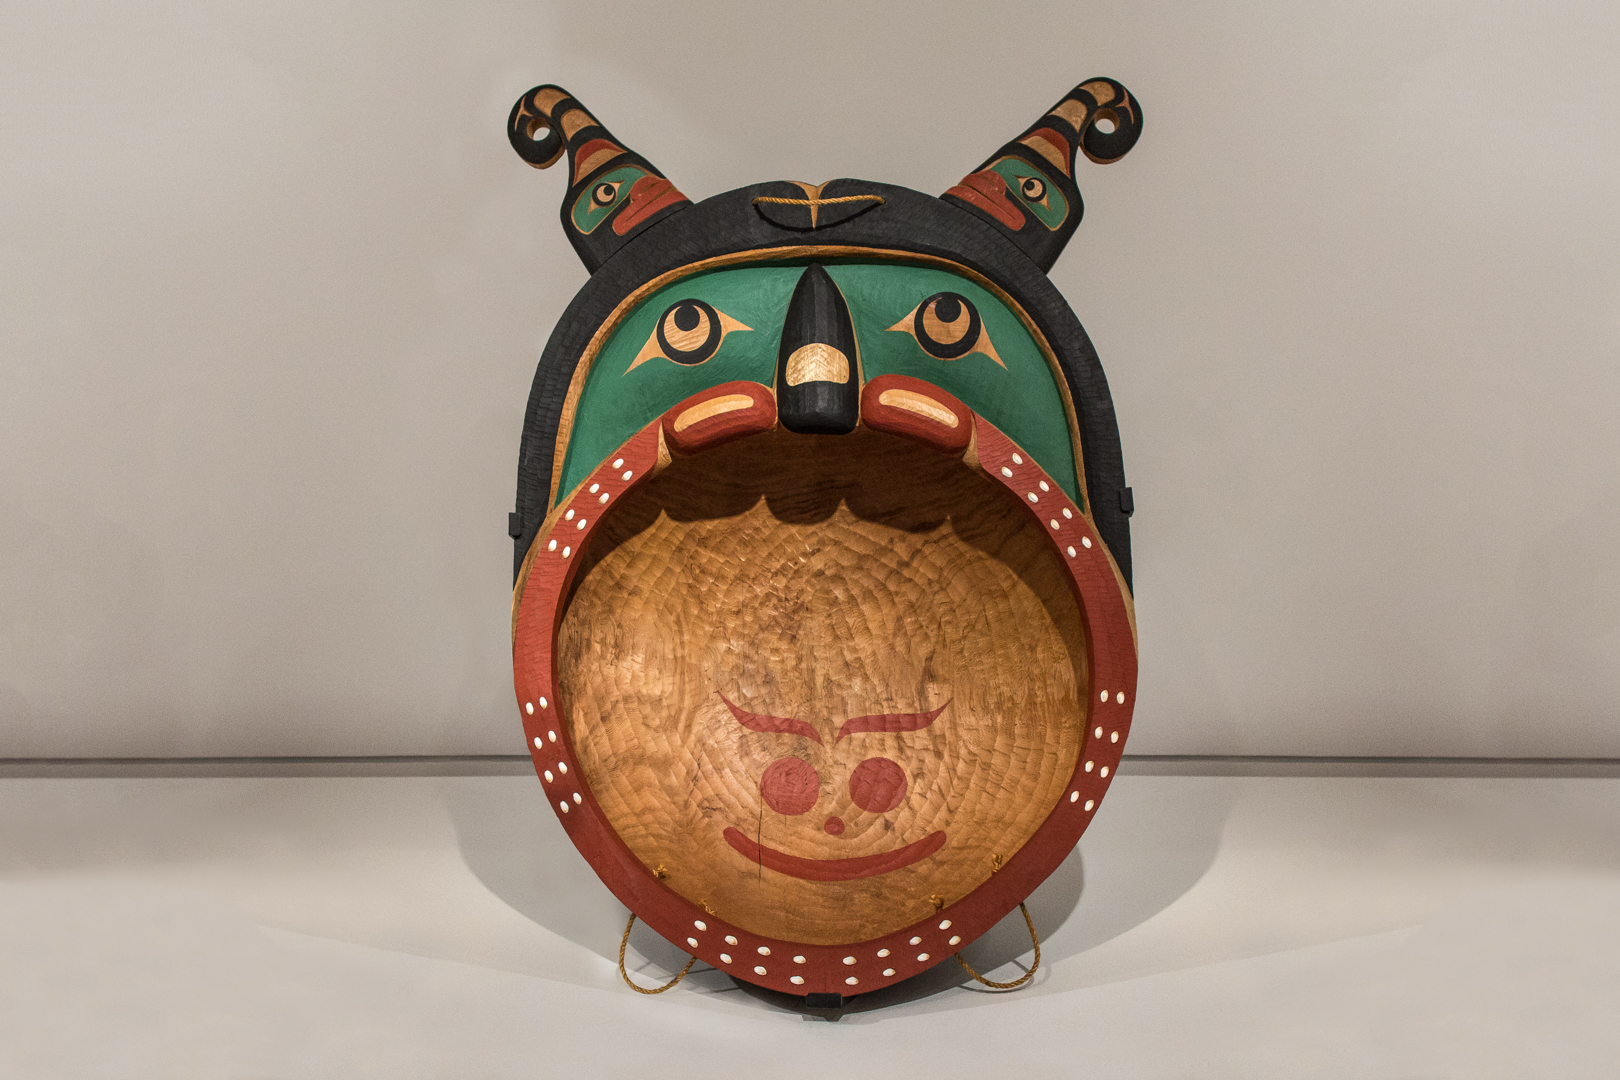 Object of the Week: Lukwalil (feast dish)